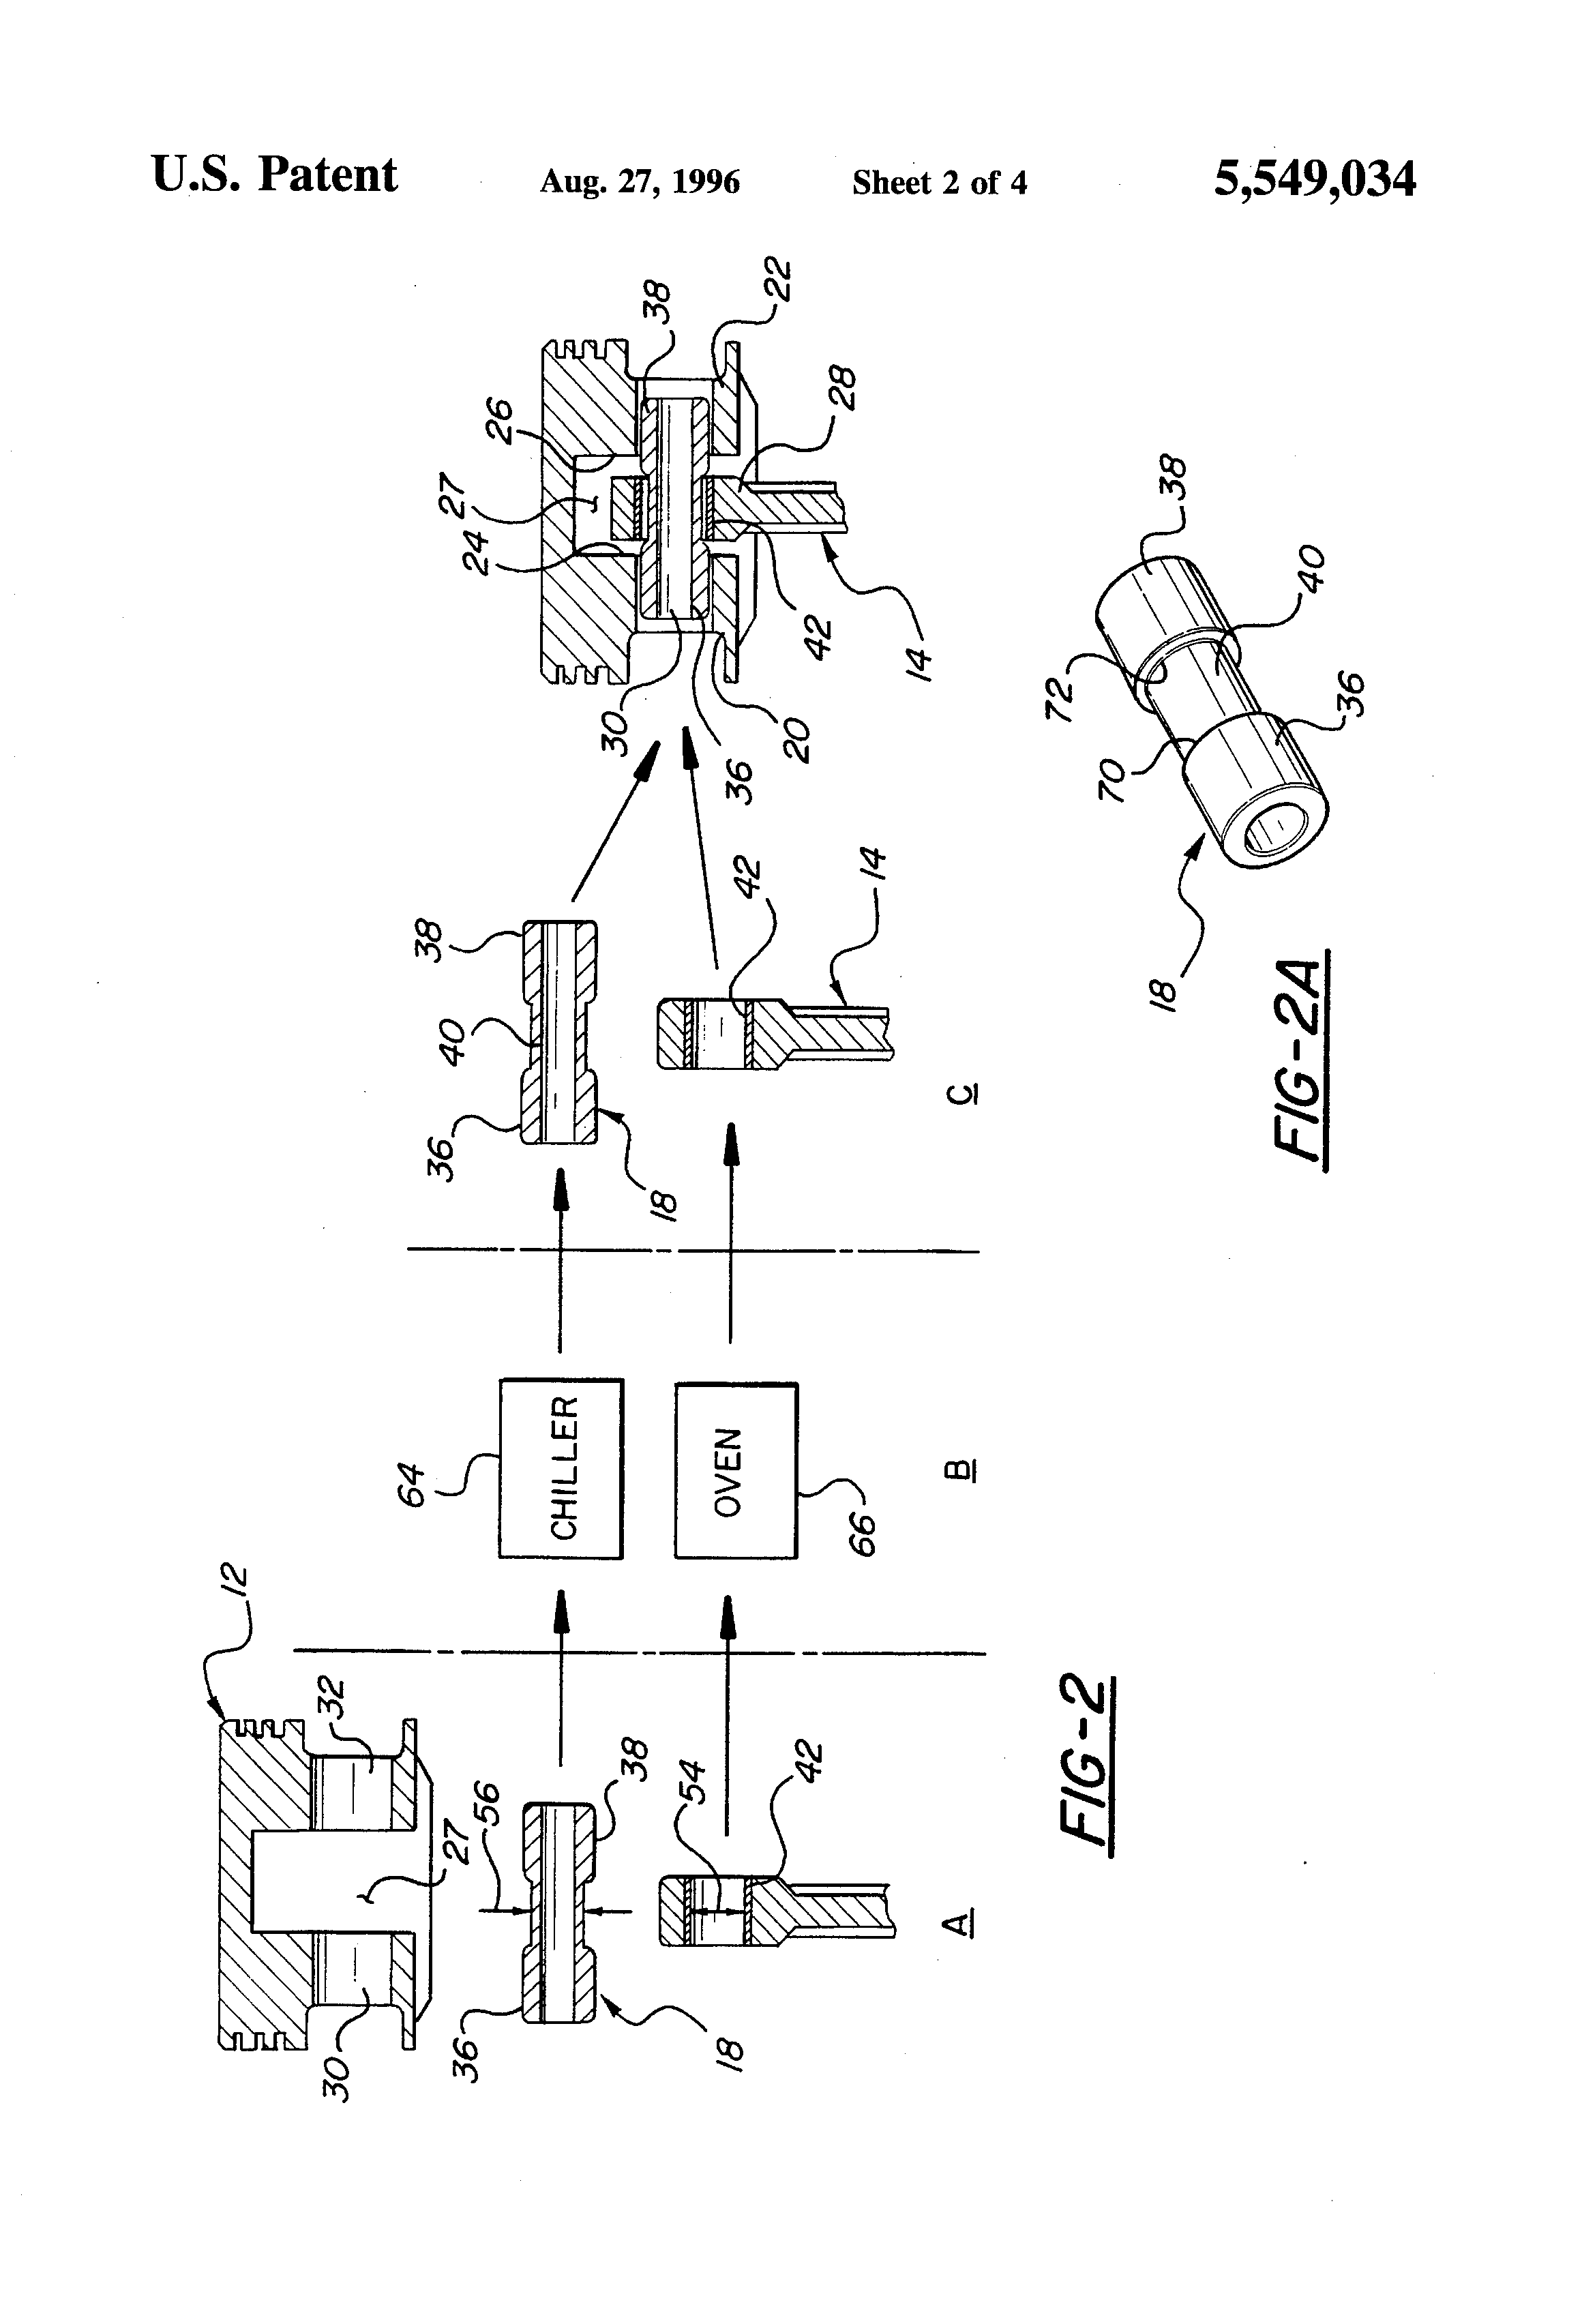 connecting rod assembly drawing pdf